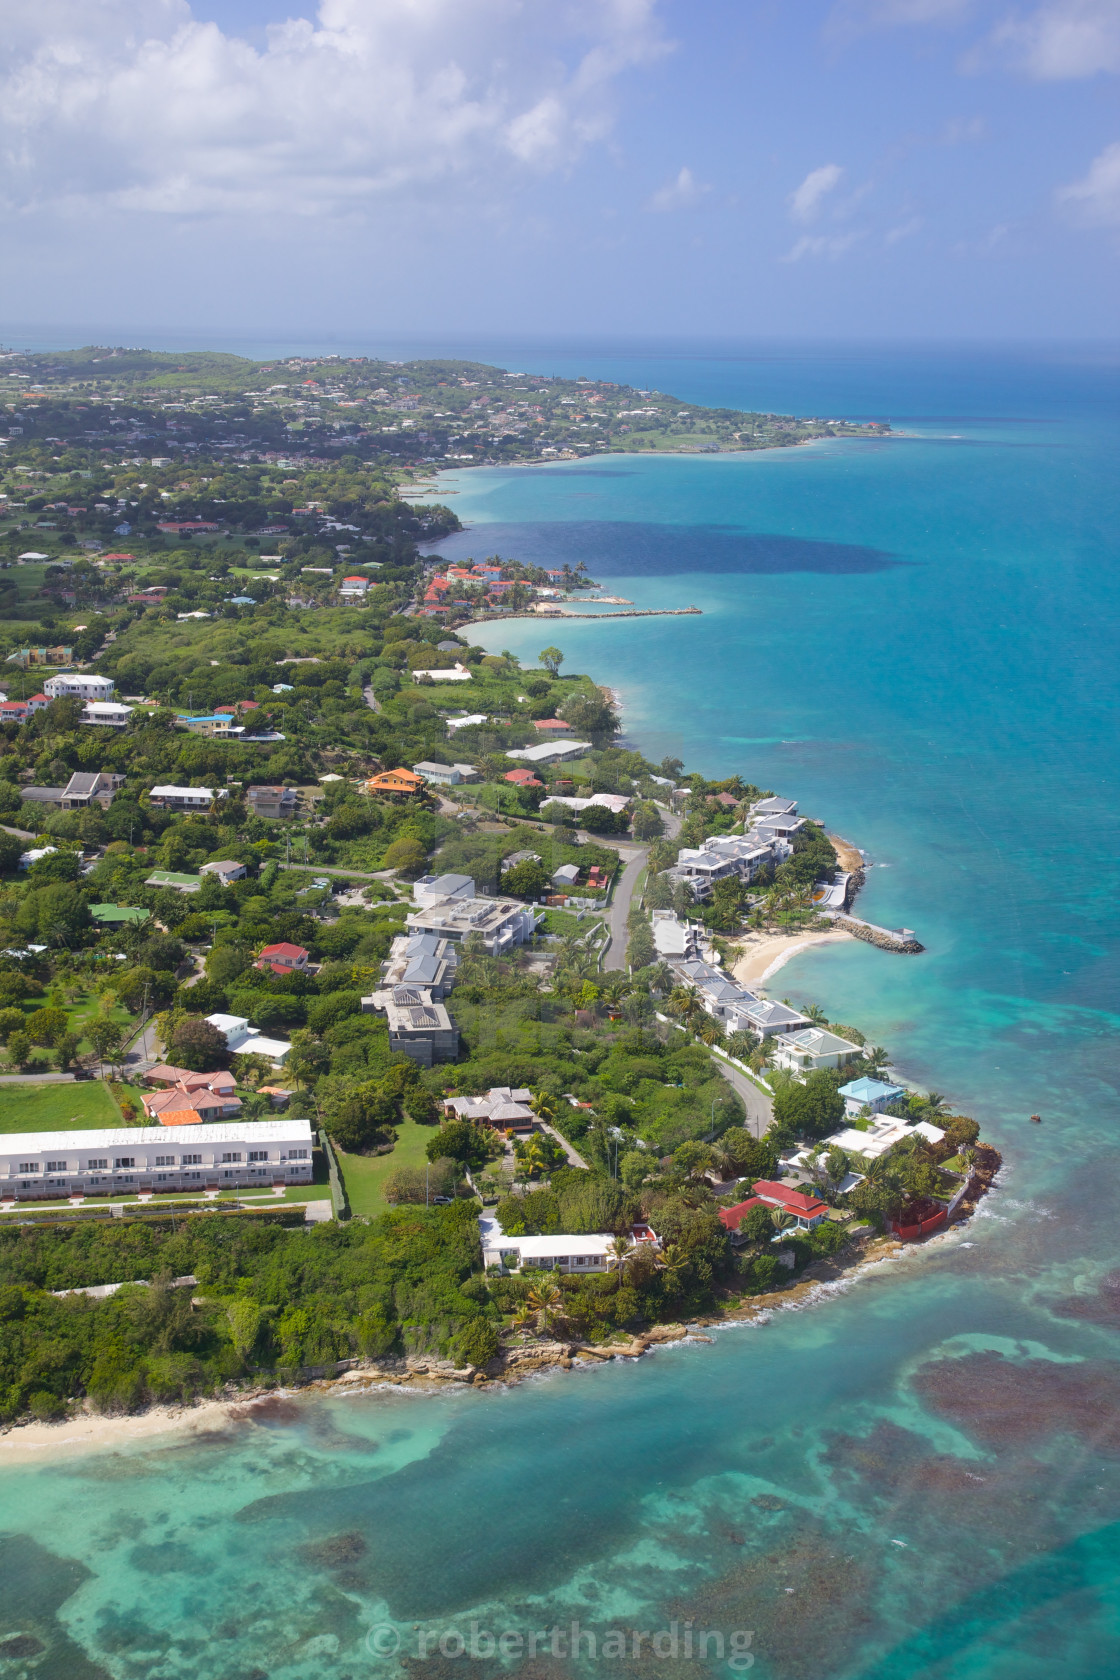 View of Ely's Bay, Hodges Bay and Boons Bay, Antigua